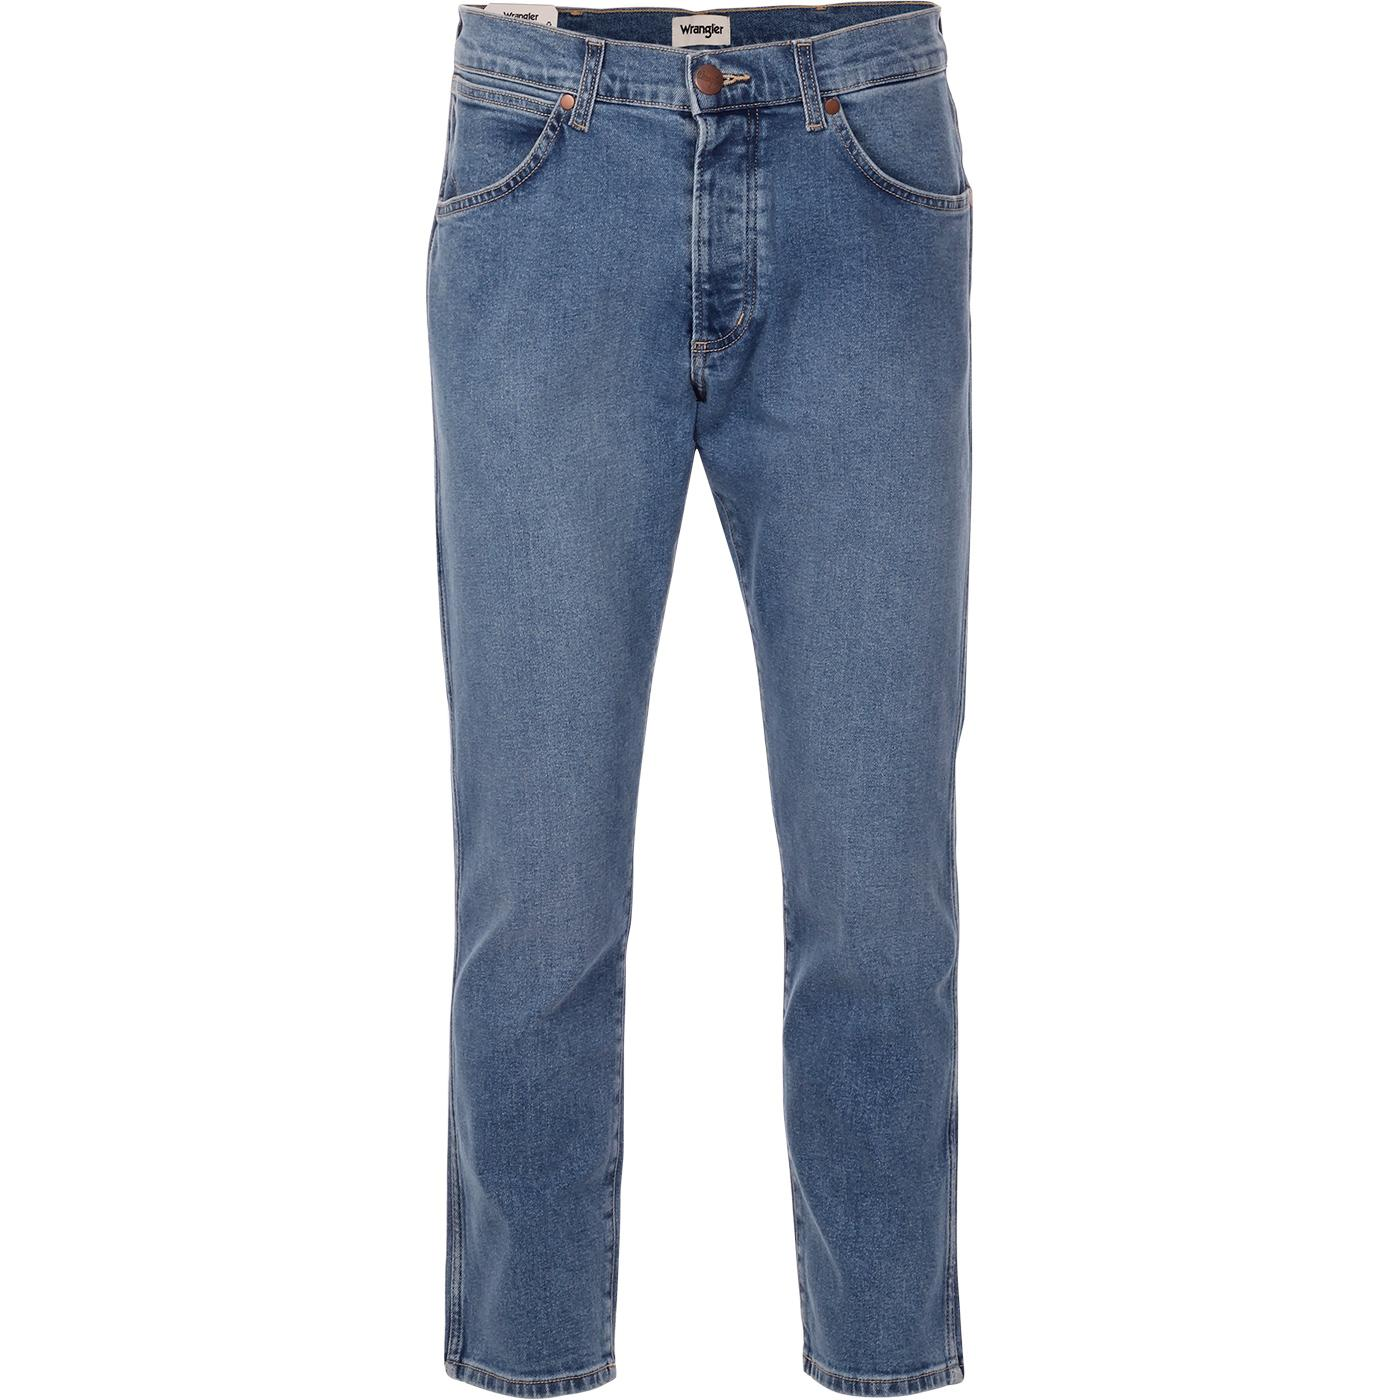 Slider WRANGLER Regular Taper Jeans (Blue Stones)